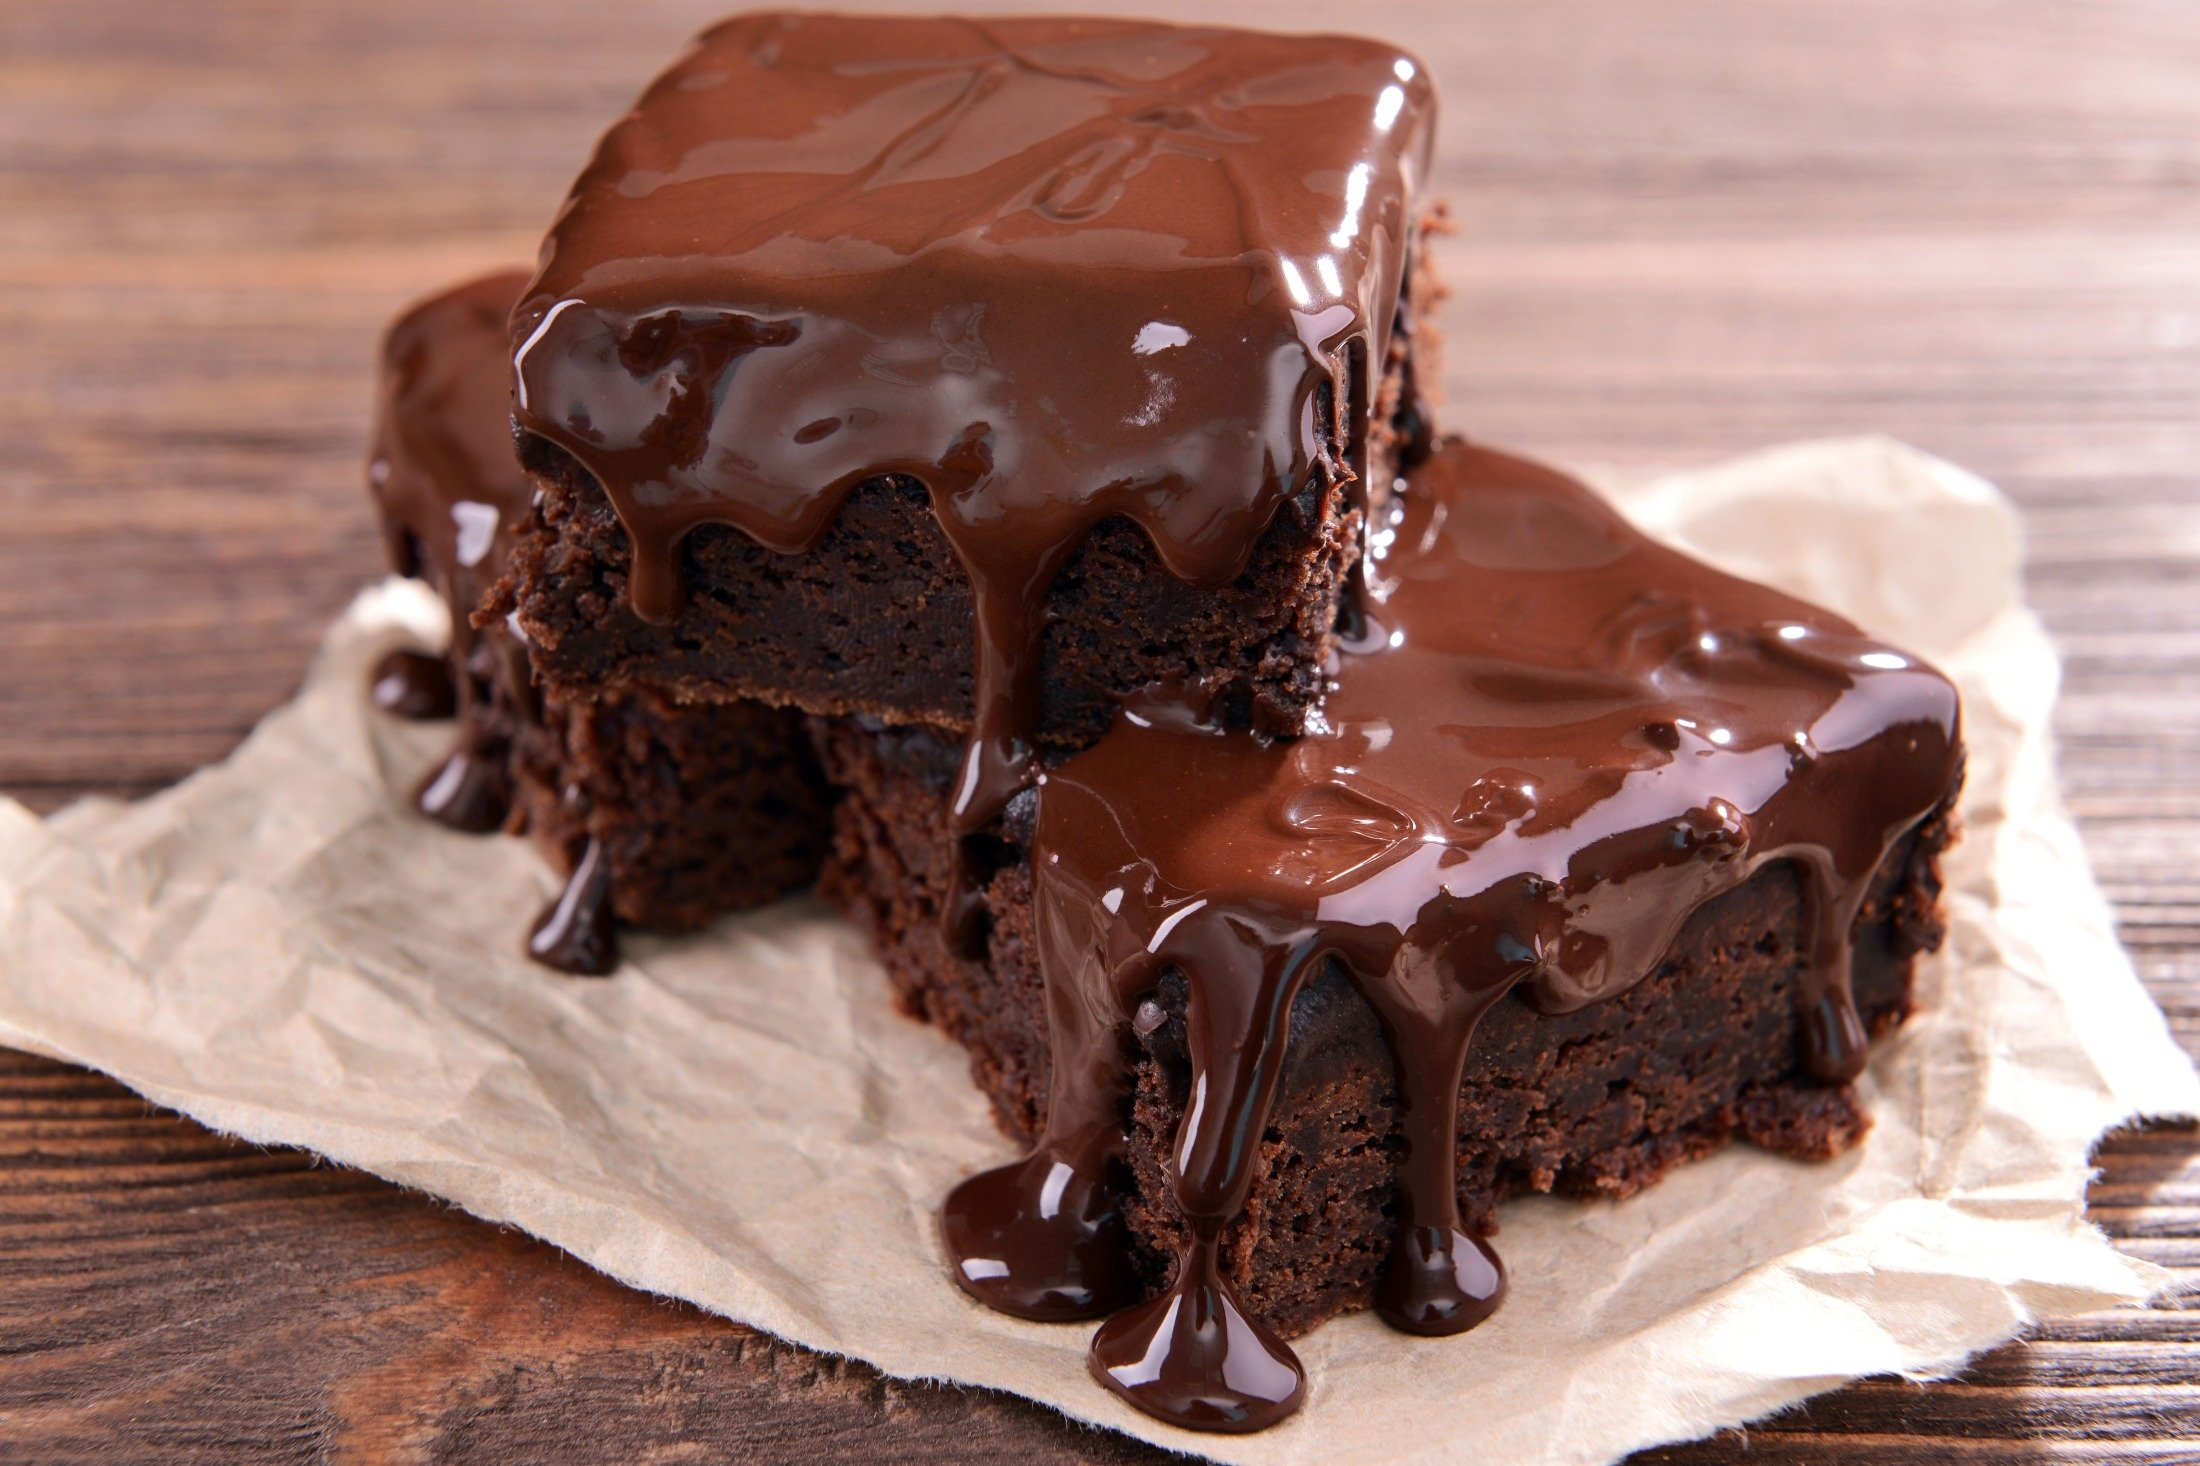 Chocolate topping drips from the edges of cakes on a table. (Shutterstock Photo)